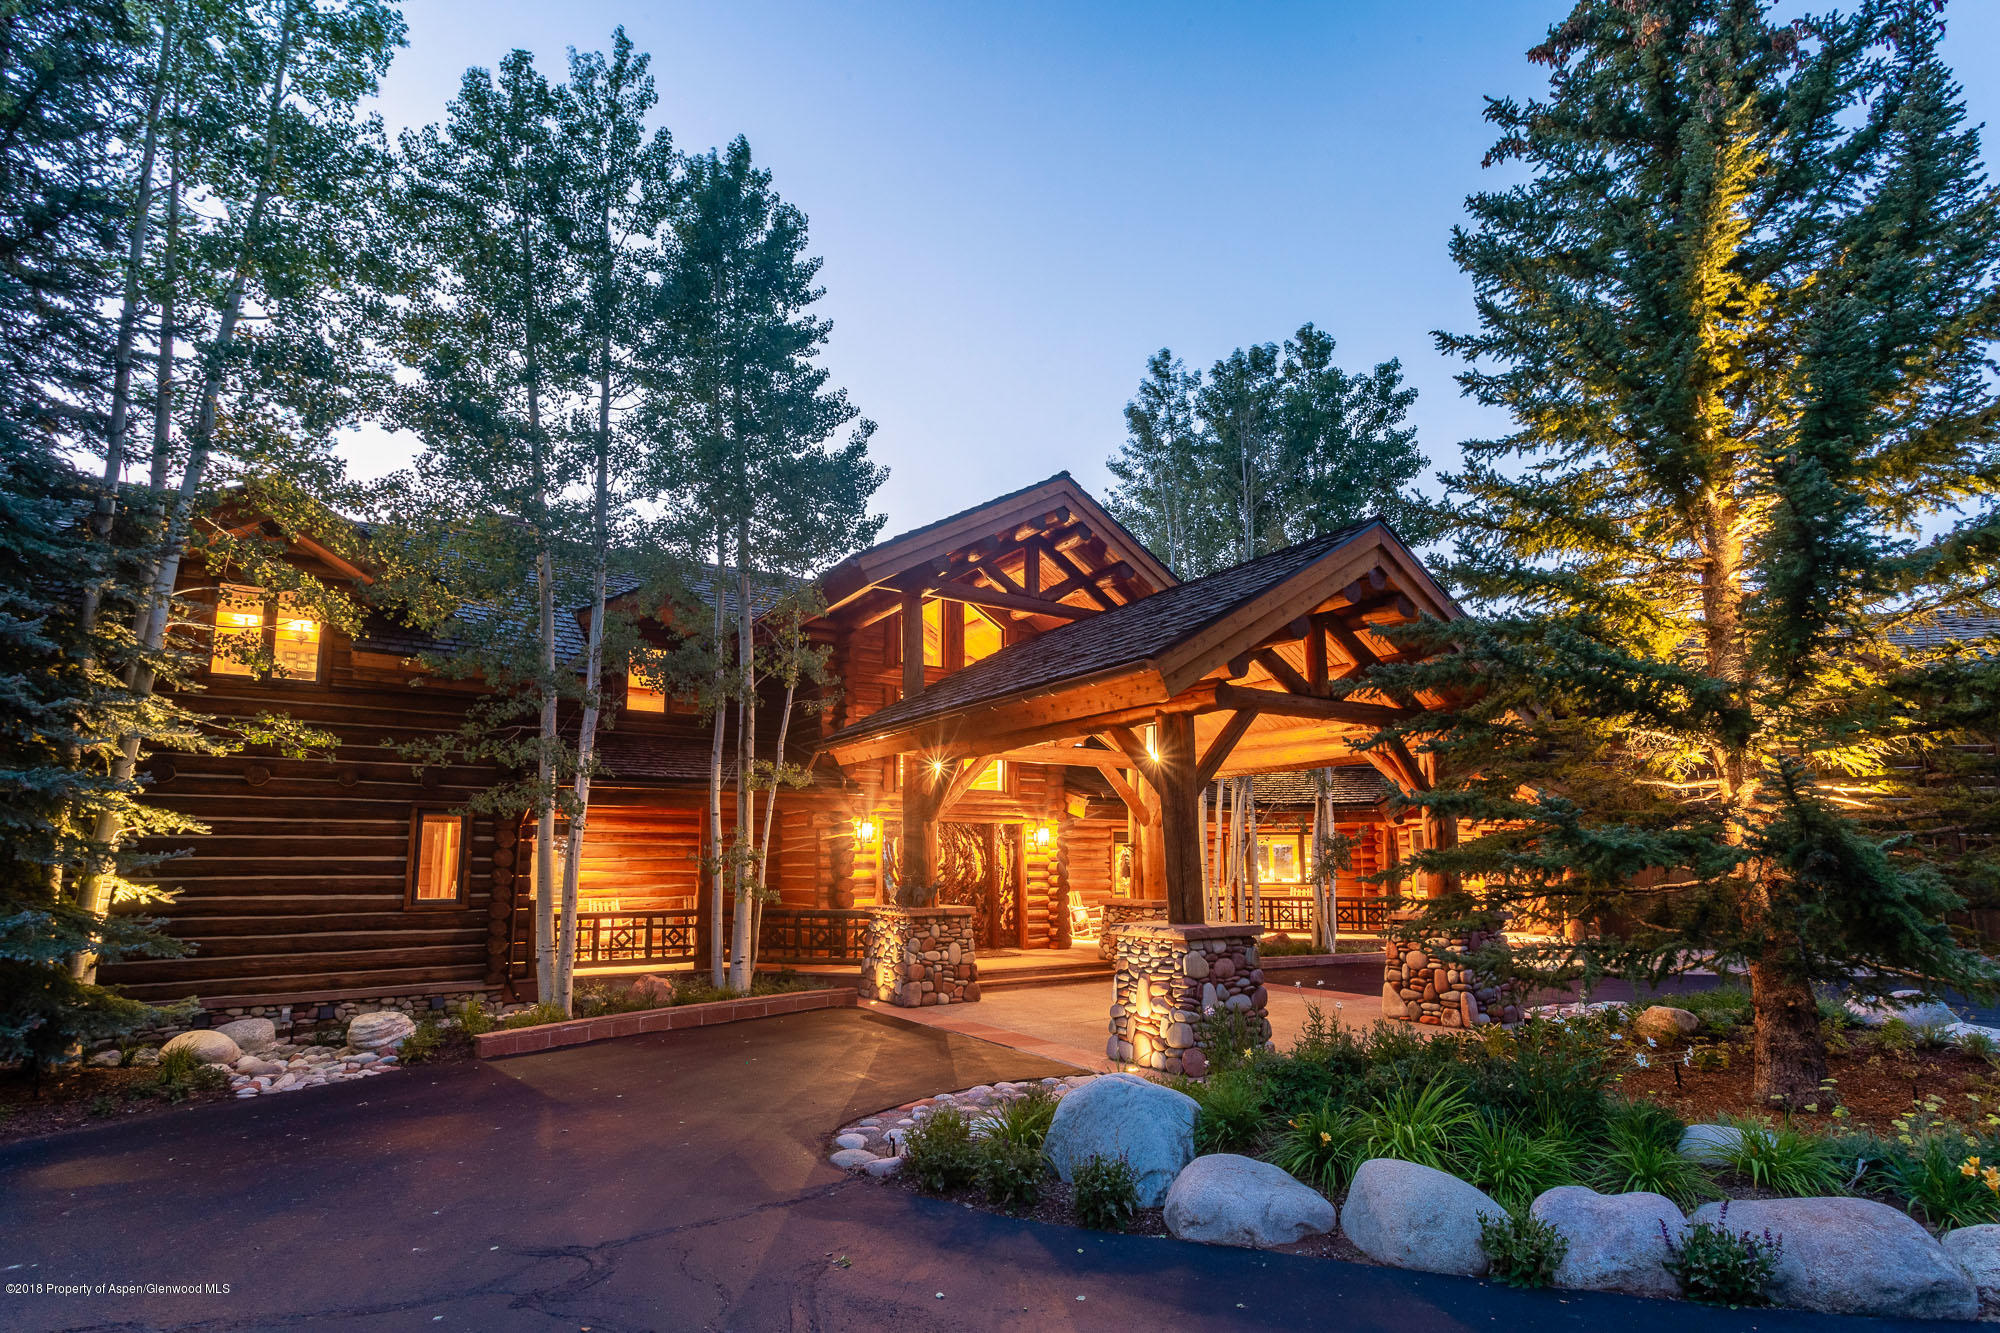 Timeless Mountain Estate for All Seasons. Luxury, privacy and spectacular views are simply unparalleled in this custom log home in the exclusive neighborhood of Eagle Pines, only 10 minutes from downtown Aspen. Sweeping views of the Owl Creek meadows framed by the Elk Mountain Range and Mt Sopris are enjoyed from every room of this extraordinary home. Two heated stone terraces and spacious grounds of 4.5 acres are perfect for taking in gorgeous sunsets and entertaining in complete privacy. This 11,170 sq. ft. home features 6 en-suite bedrooms, an exceptional bunk room that sleeps 12, a media room, western bar/game room, climate-controlled wine room, private office and heated three car garage. Surrounded by world class biking, hiking, downhill and Nordic ski trails, the Lodge at Eagle Pines is the ultimate retreat for enjoying the quintessential mountain life!